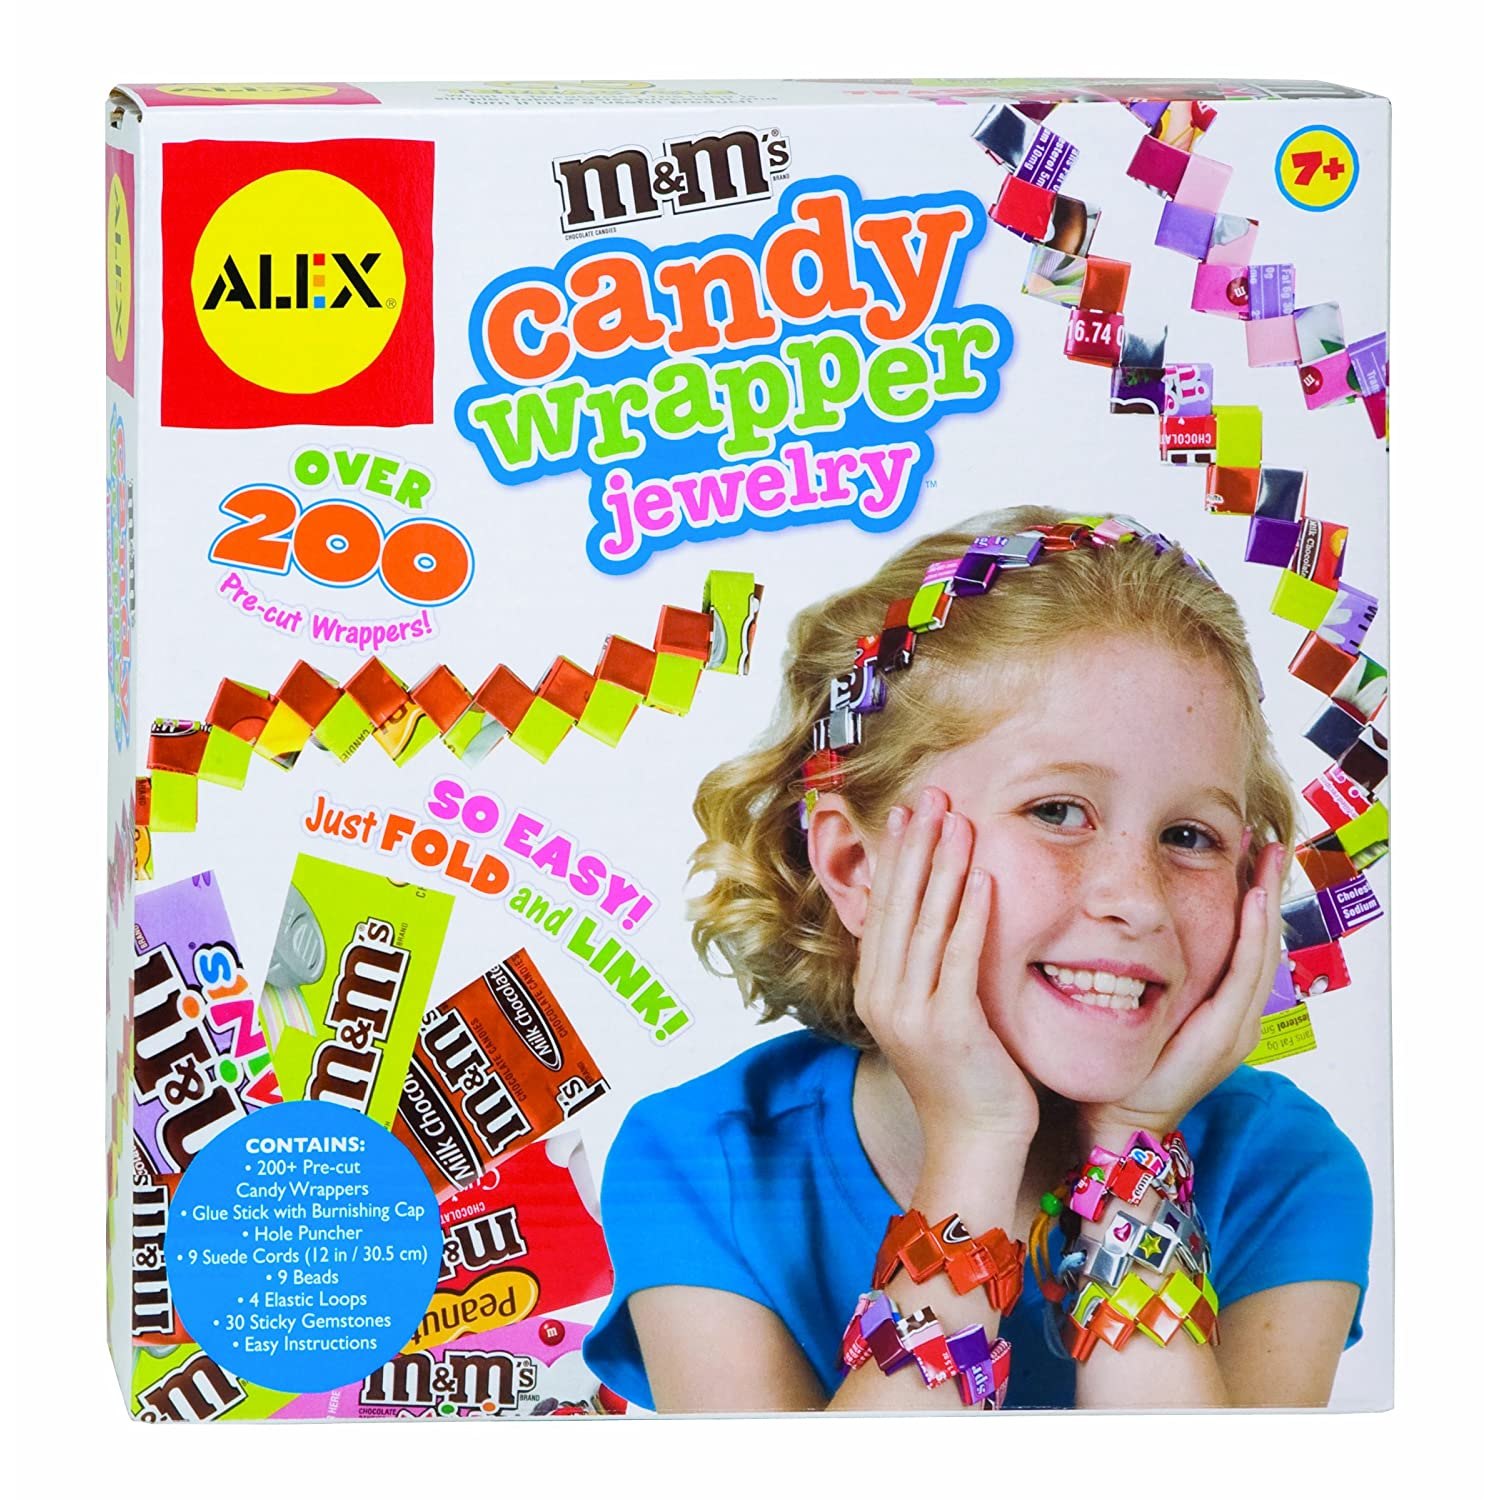 Alex M & M's Candy Wrapper Jewelry